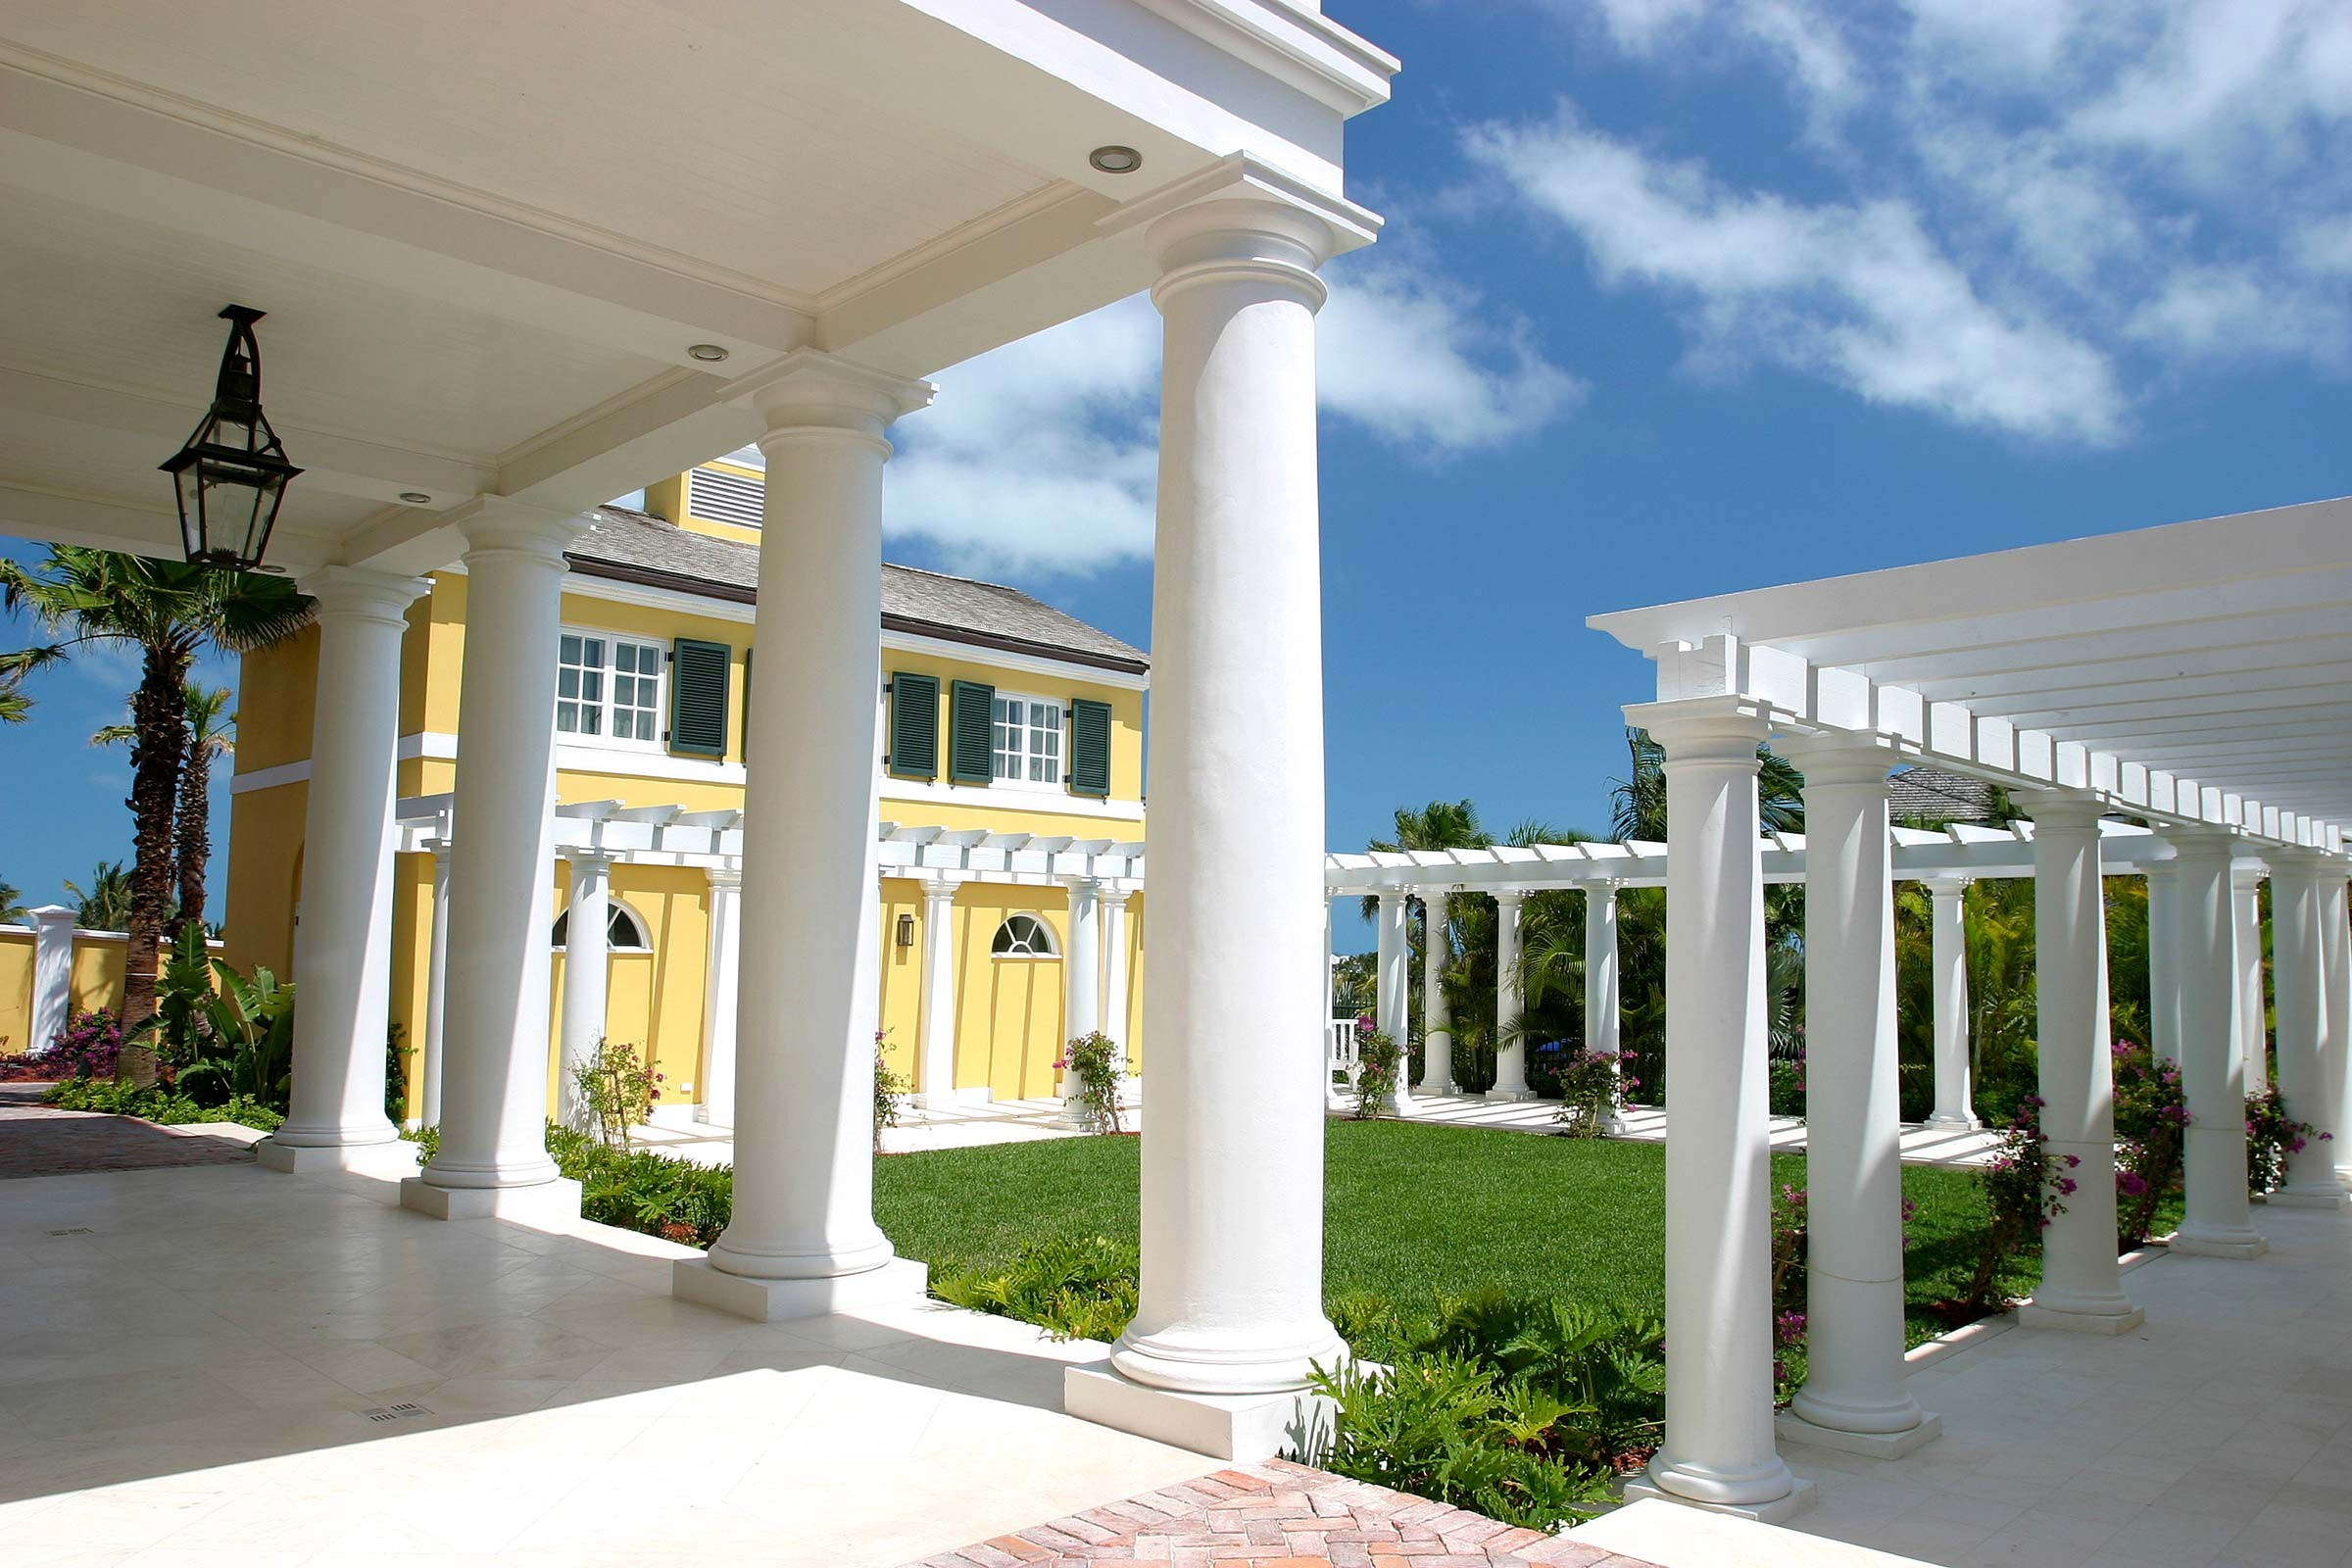 Colonial style house in the Bahamas